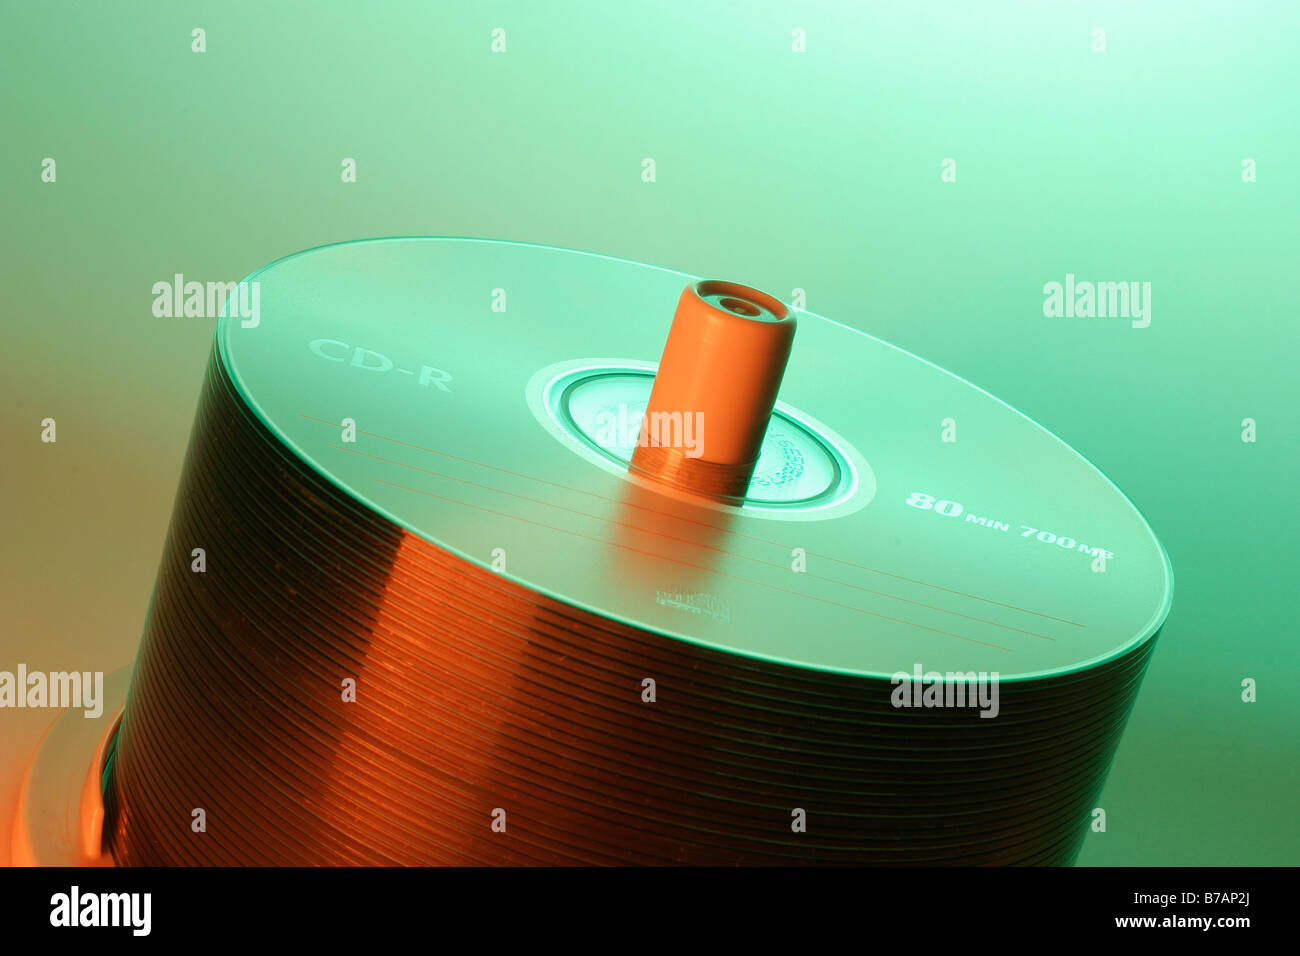 CDs on spindle Stock Photo